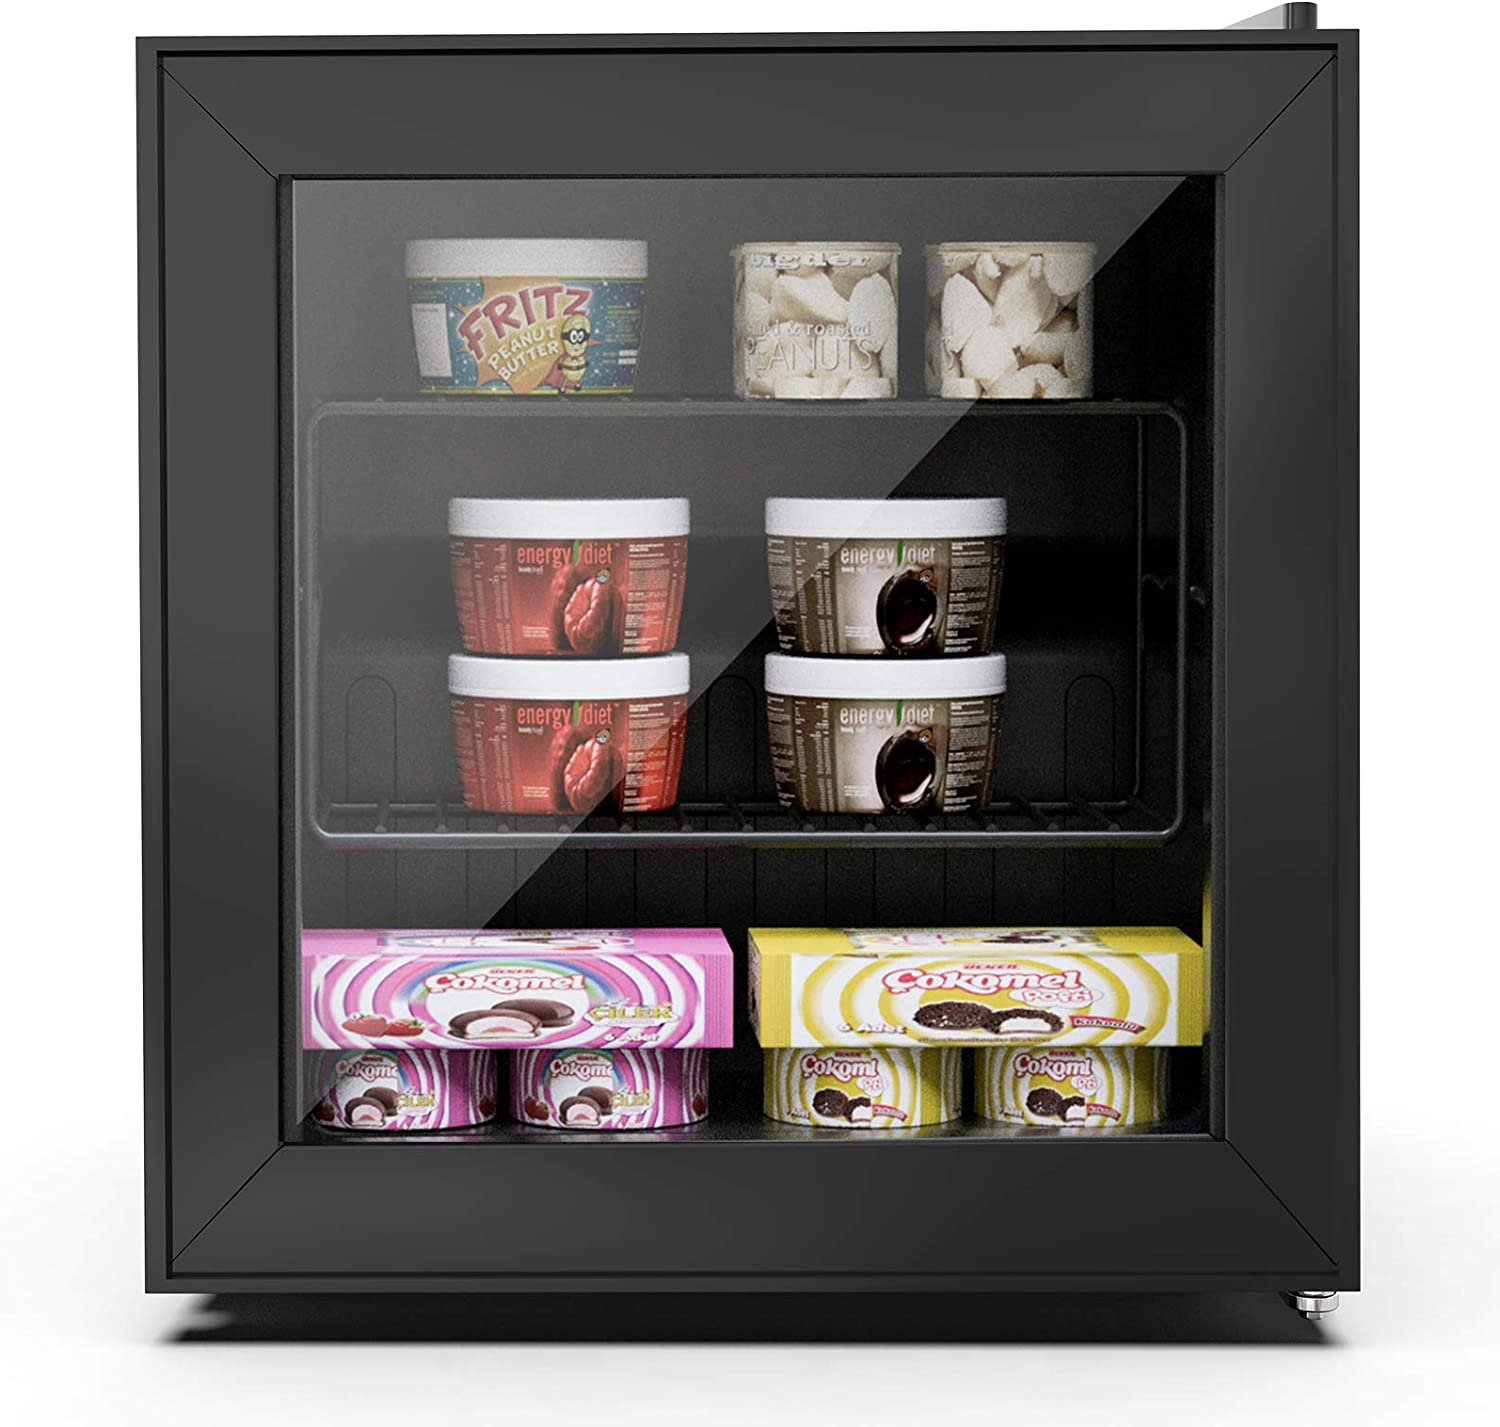 Northair Upright Freezer 1.1 cu. ft. with Three-layers Glass Door for Ice Cream/Breast Milk/Sea Food/High-alcohol Liquor, Glass Heating System,Removable Shelf, Adjustable Thermostat